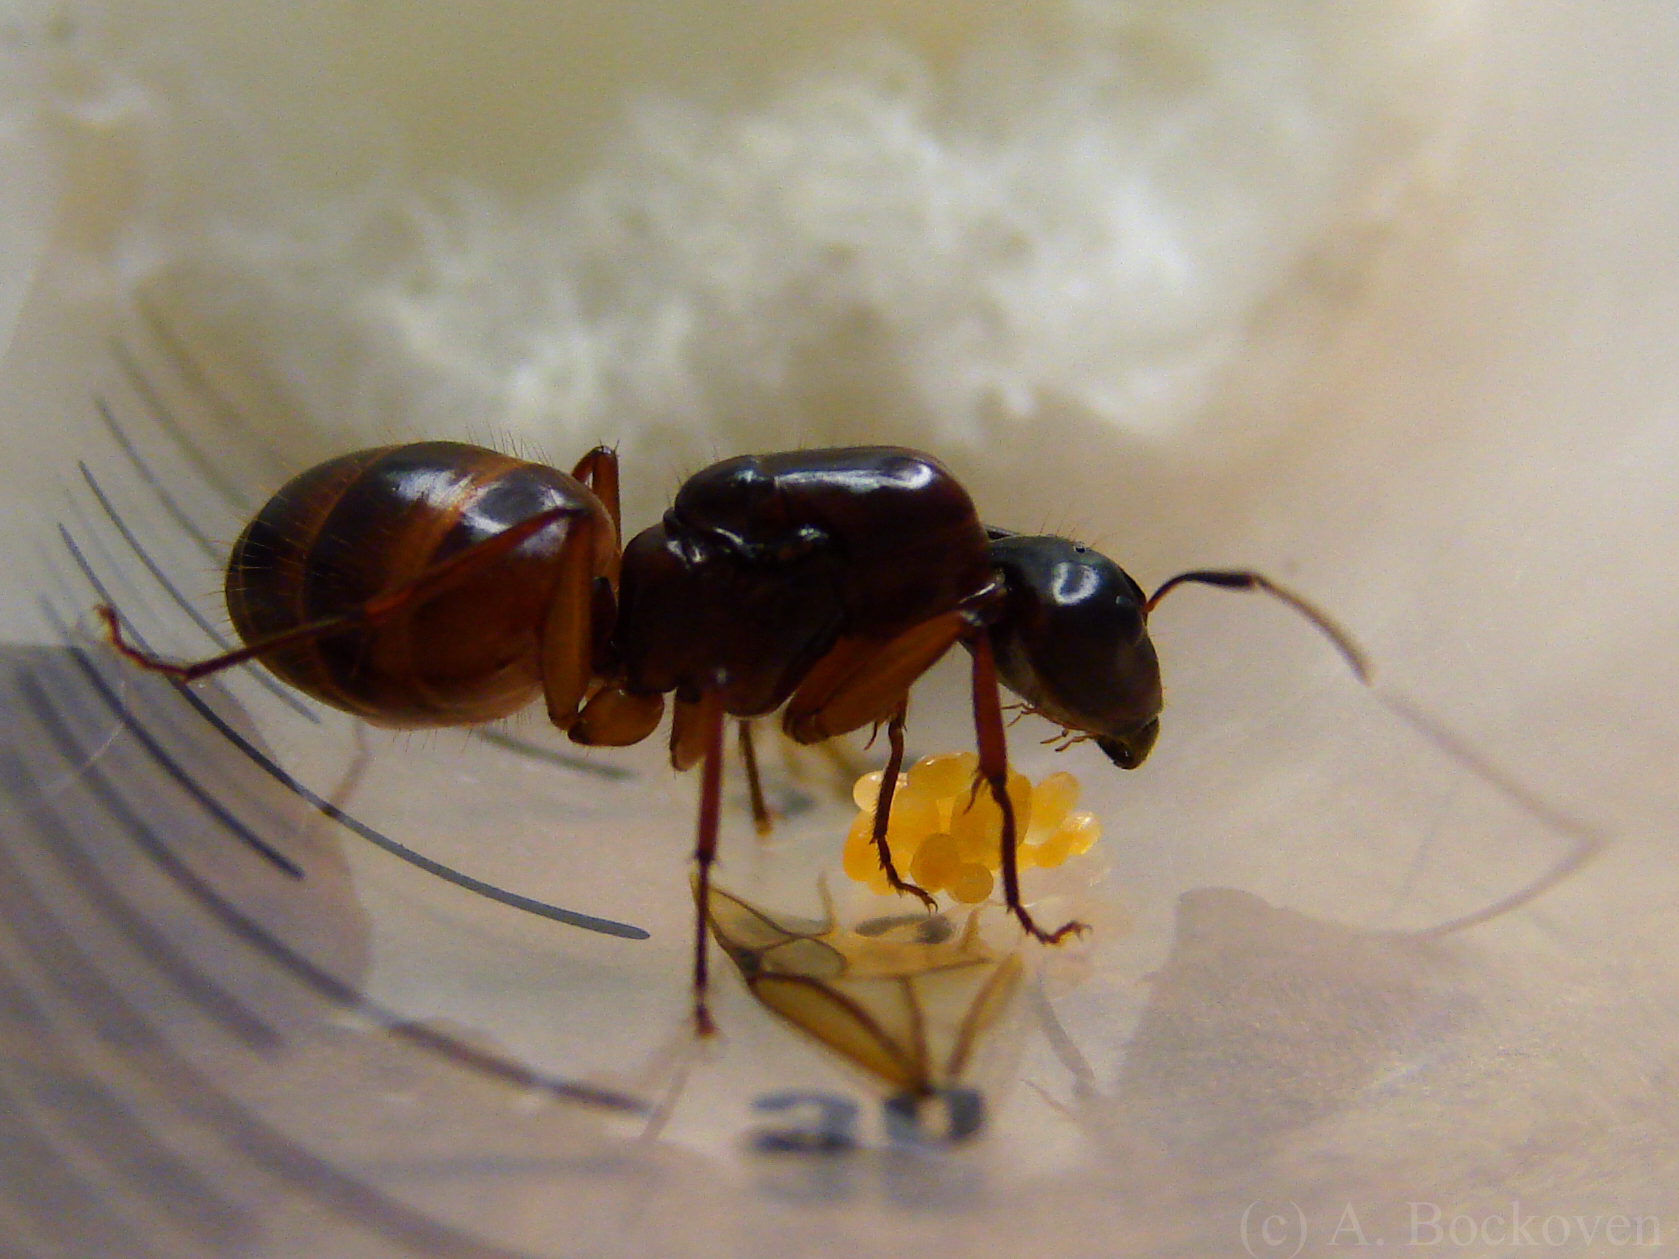 What do sugar ants look like